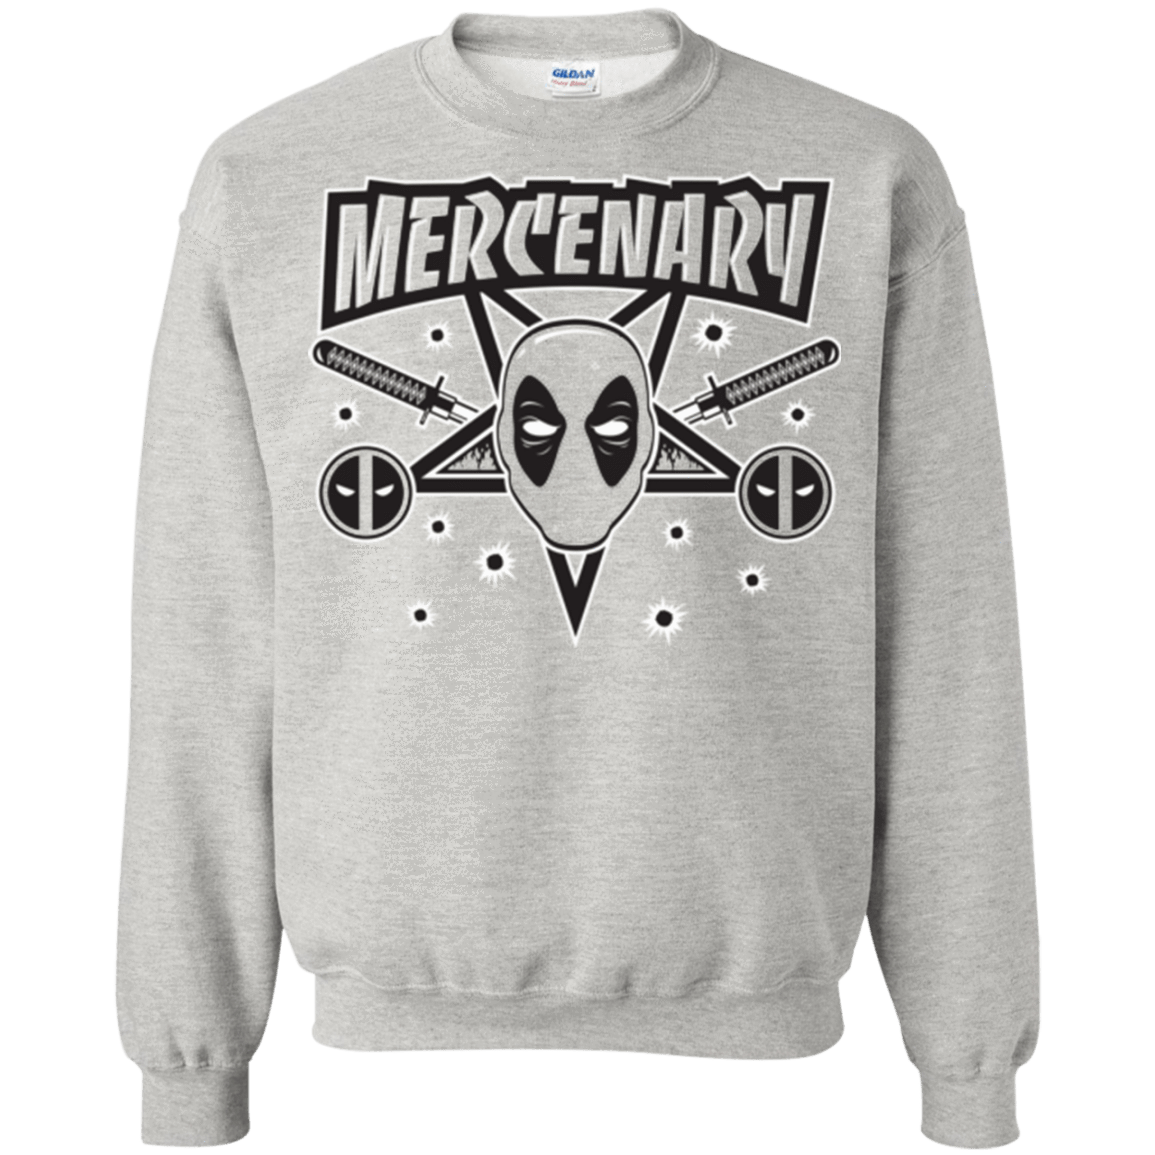 Sweatshirts Ash / Small Mercenary (1) Crewneck Sweatshirt